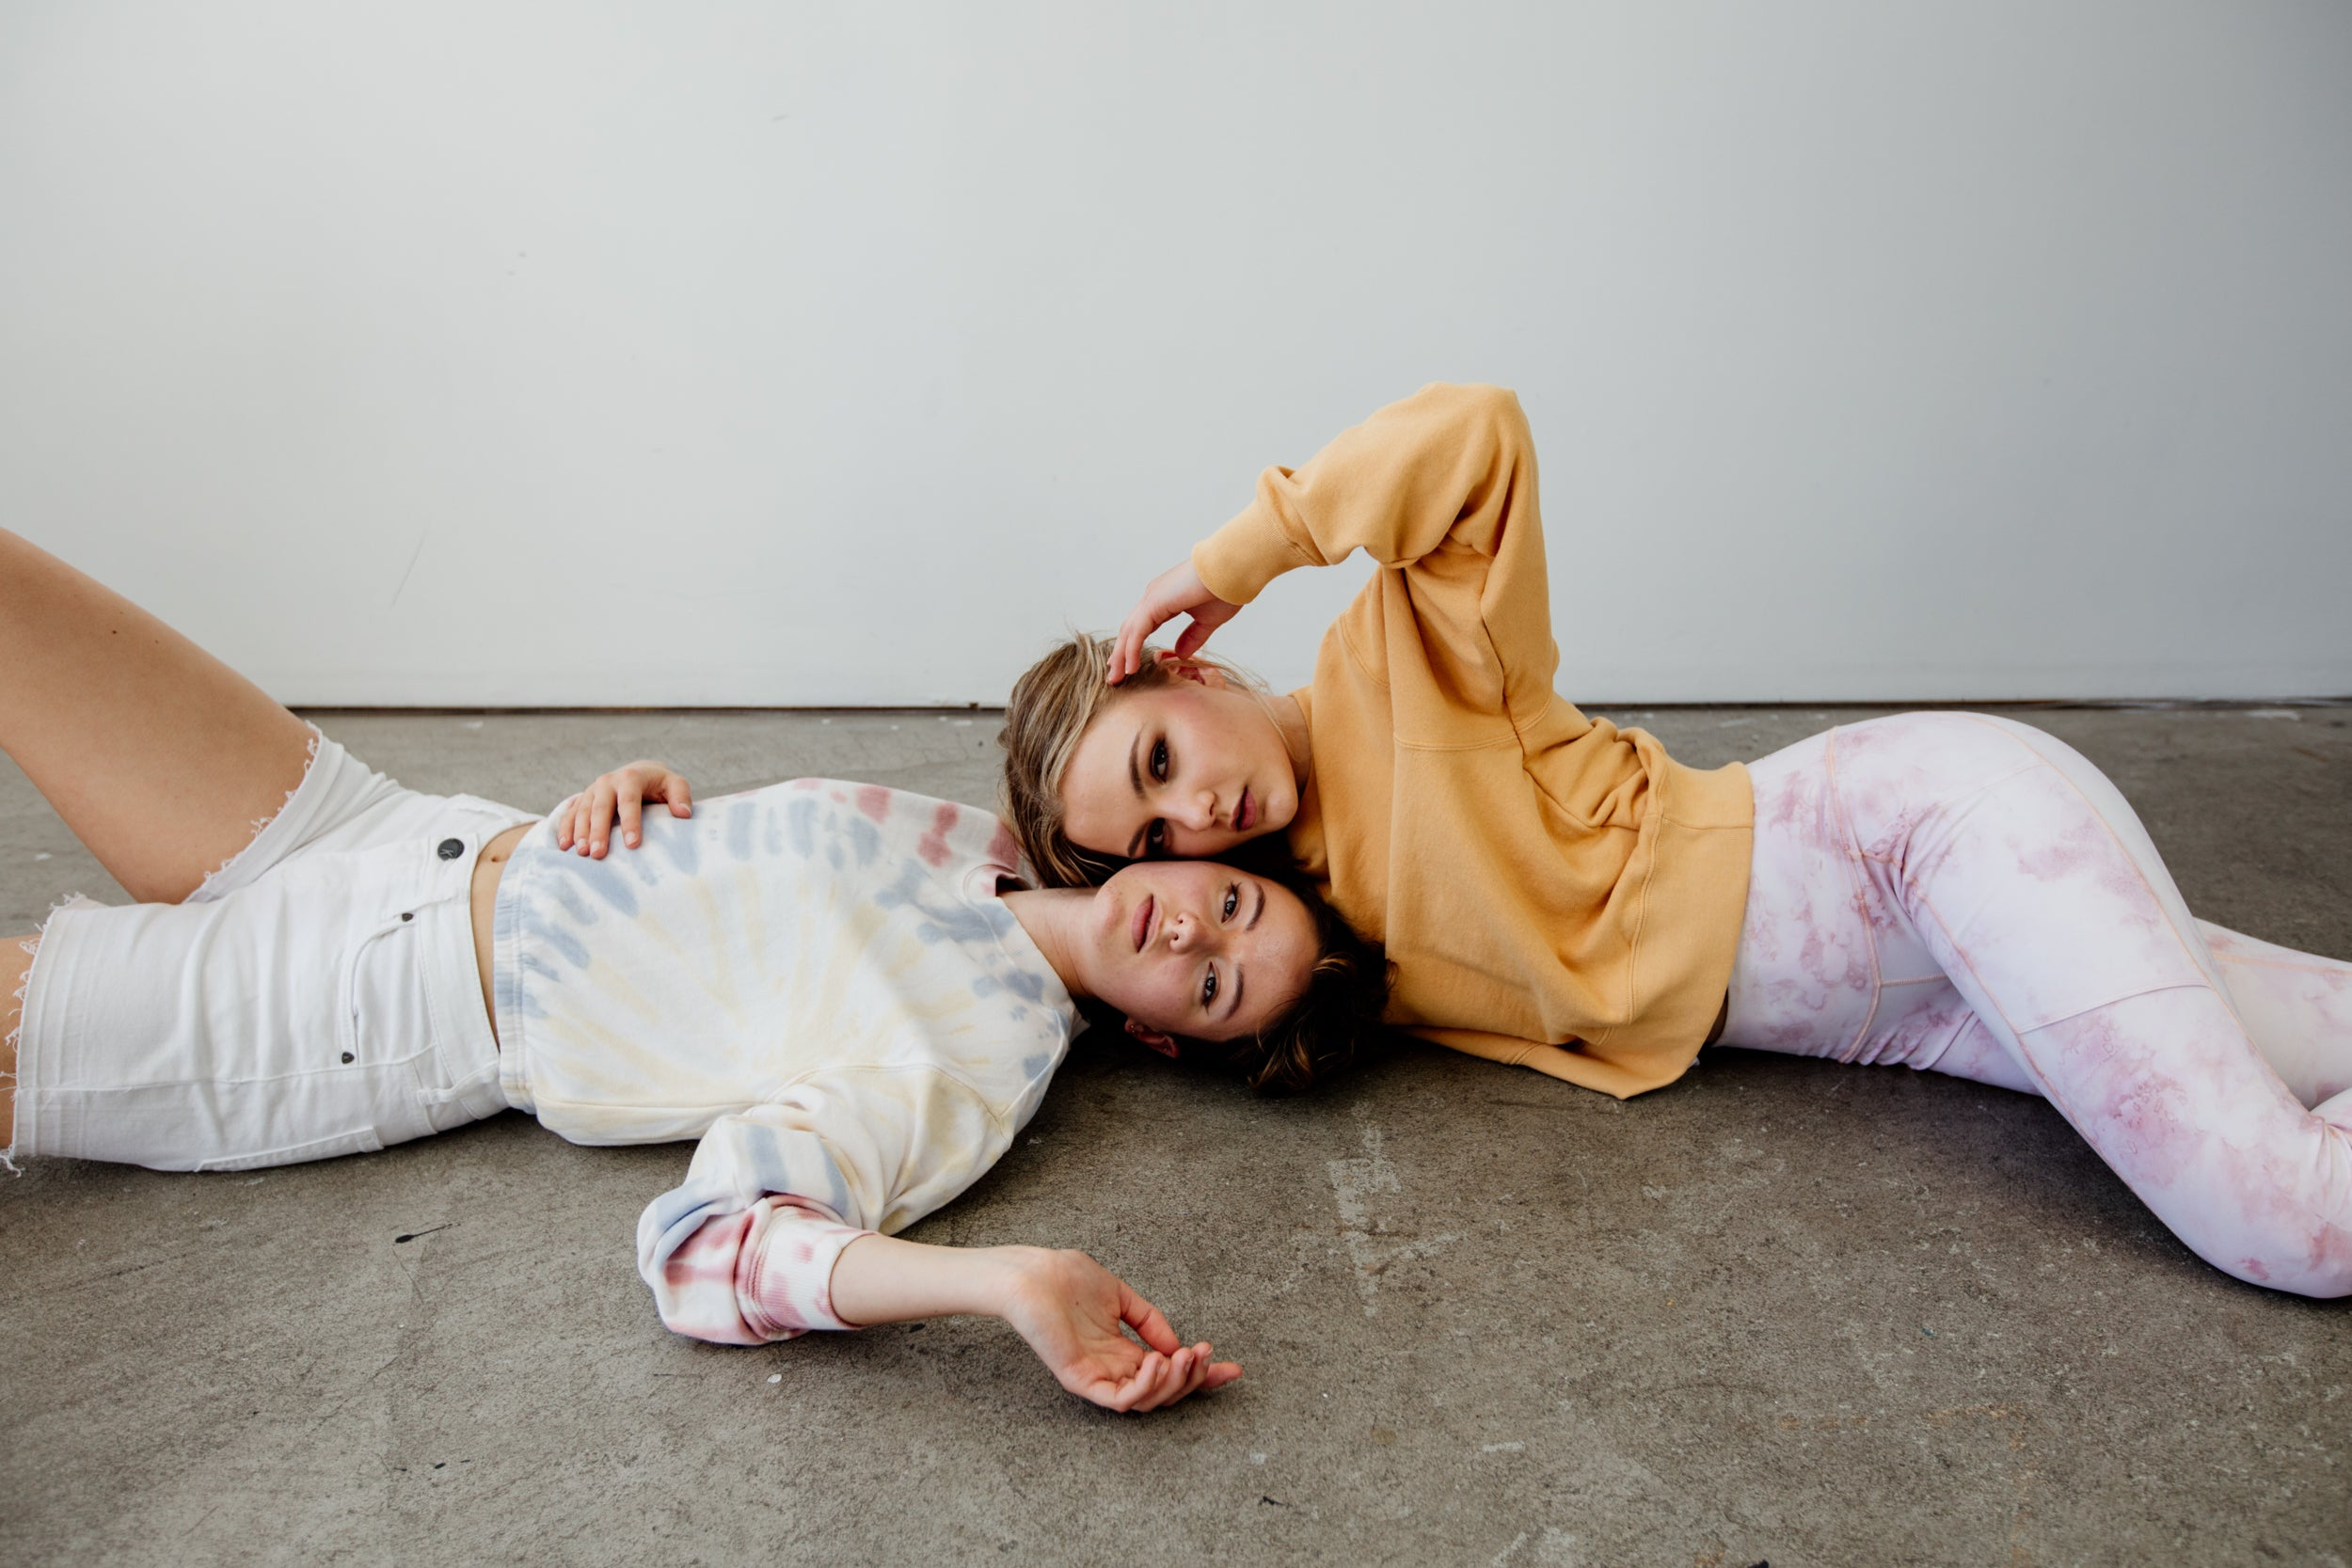 Two women lie on the floor